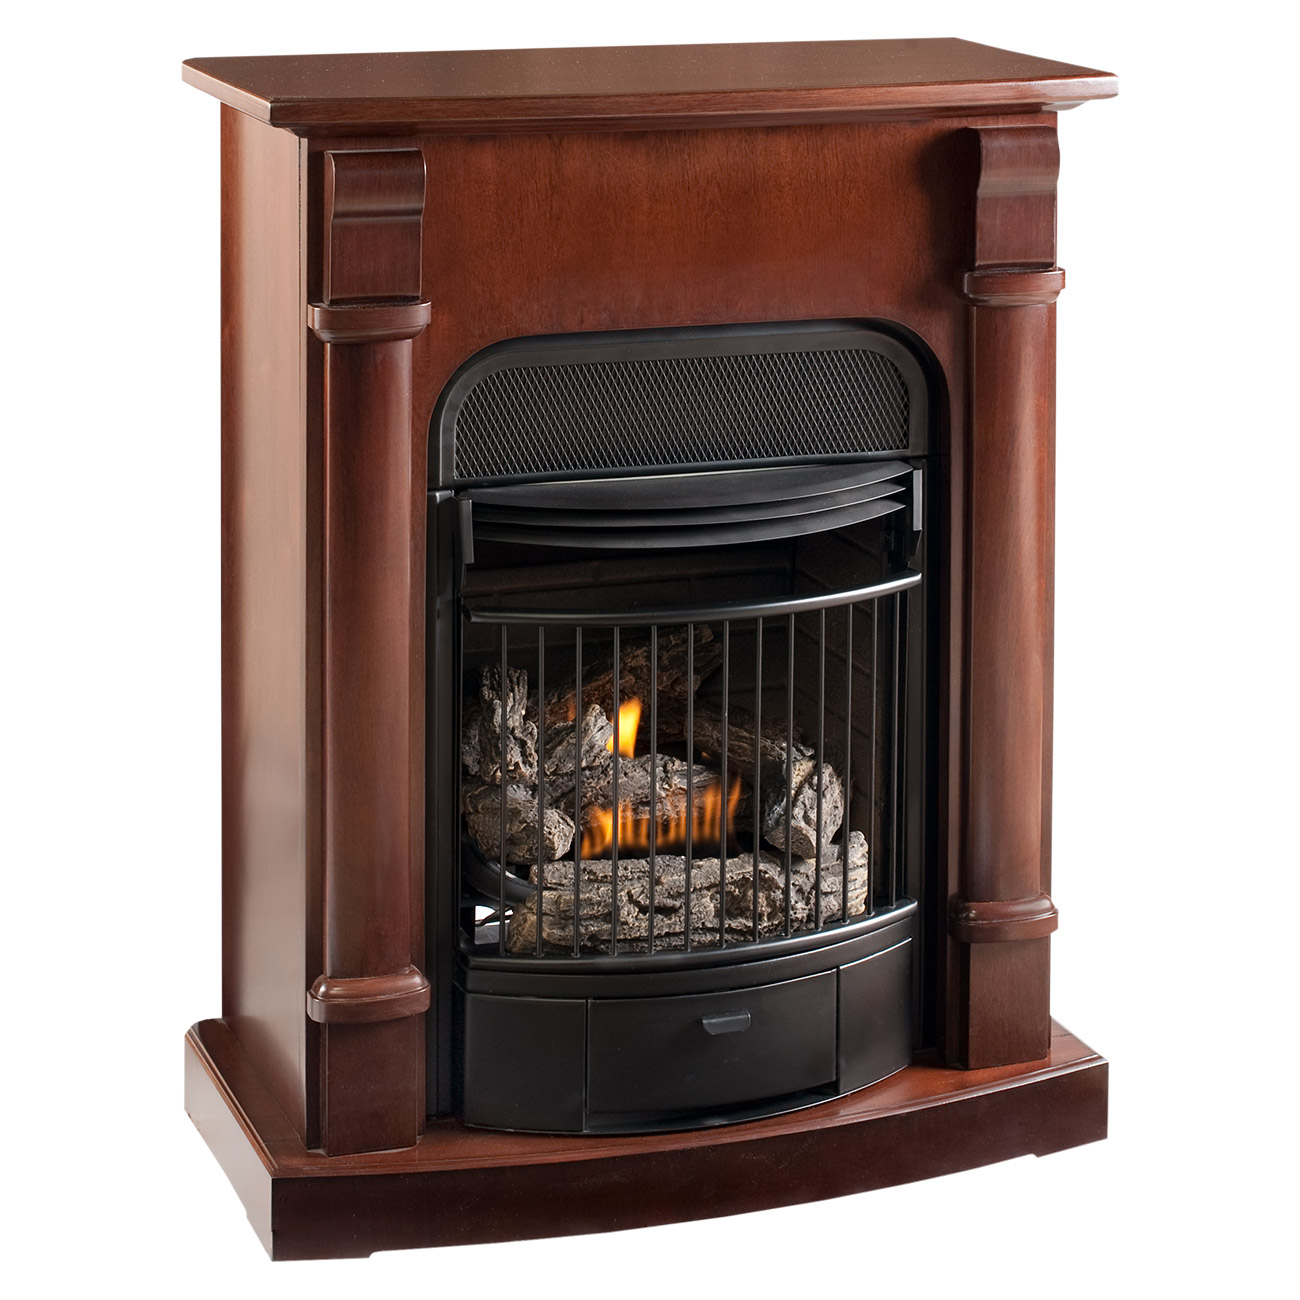 Ventless Fireplace Model Edp200t2 Ja Procom Heating